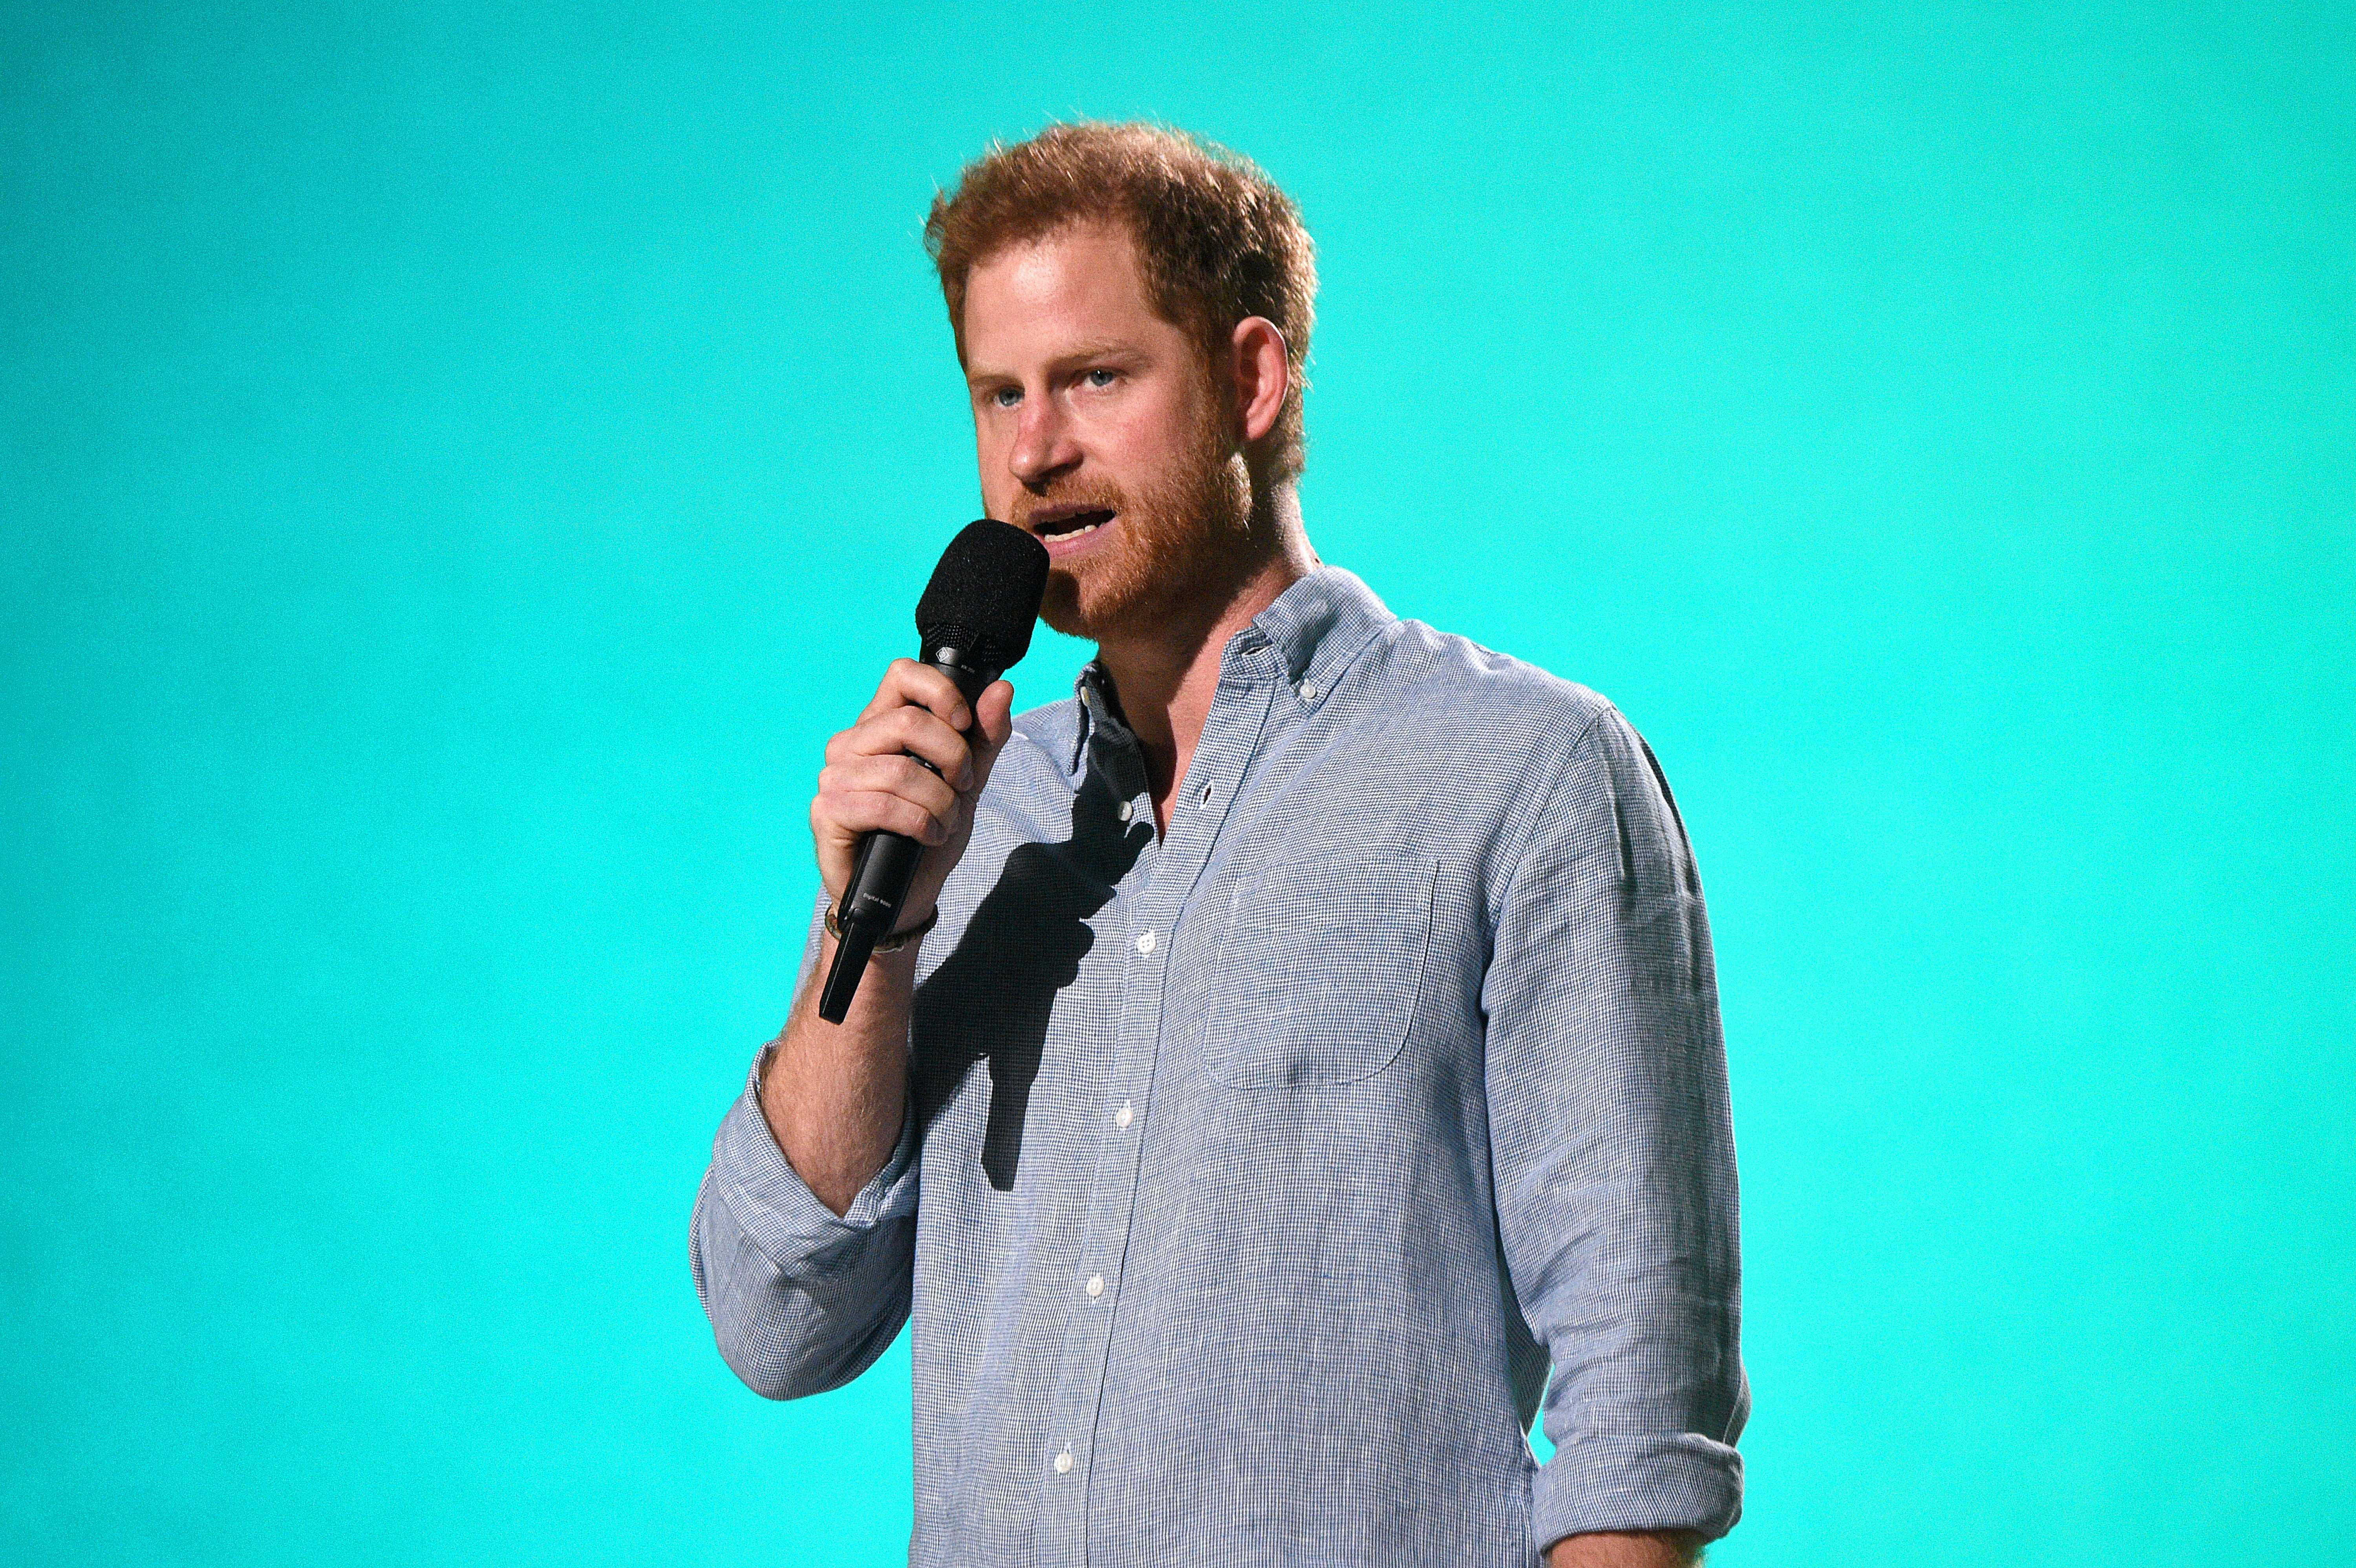 Prince Harry, The Duke of Sussex speaks onstage at SoFi Stadium in Inglewood, California, released on May 2 | Photo: Getty Images